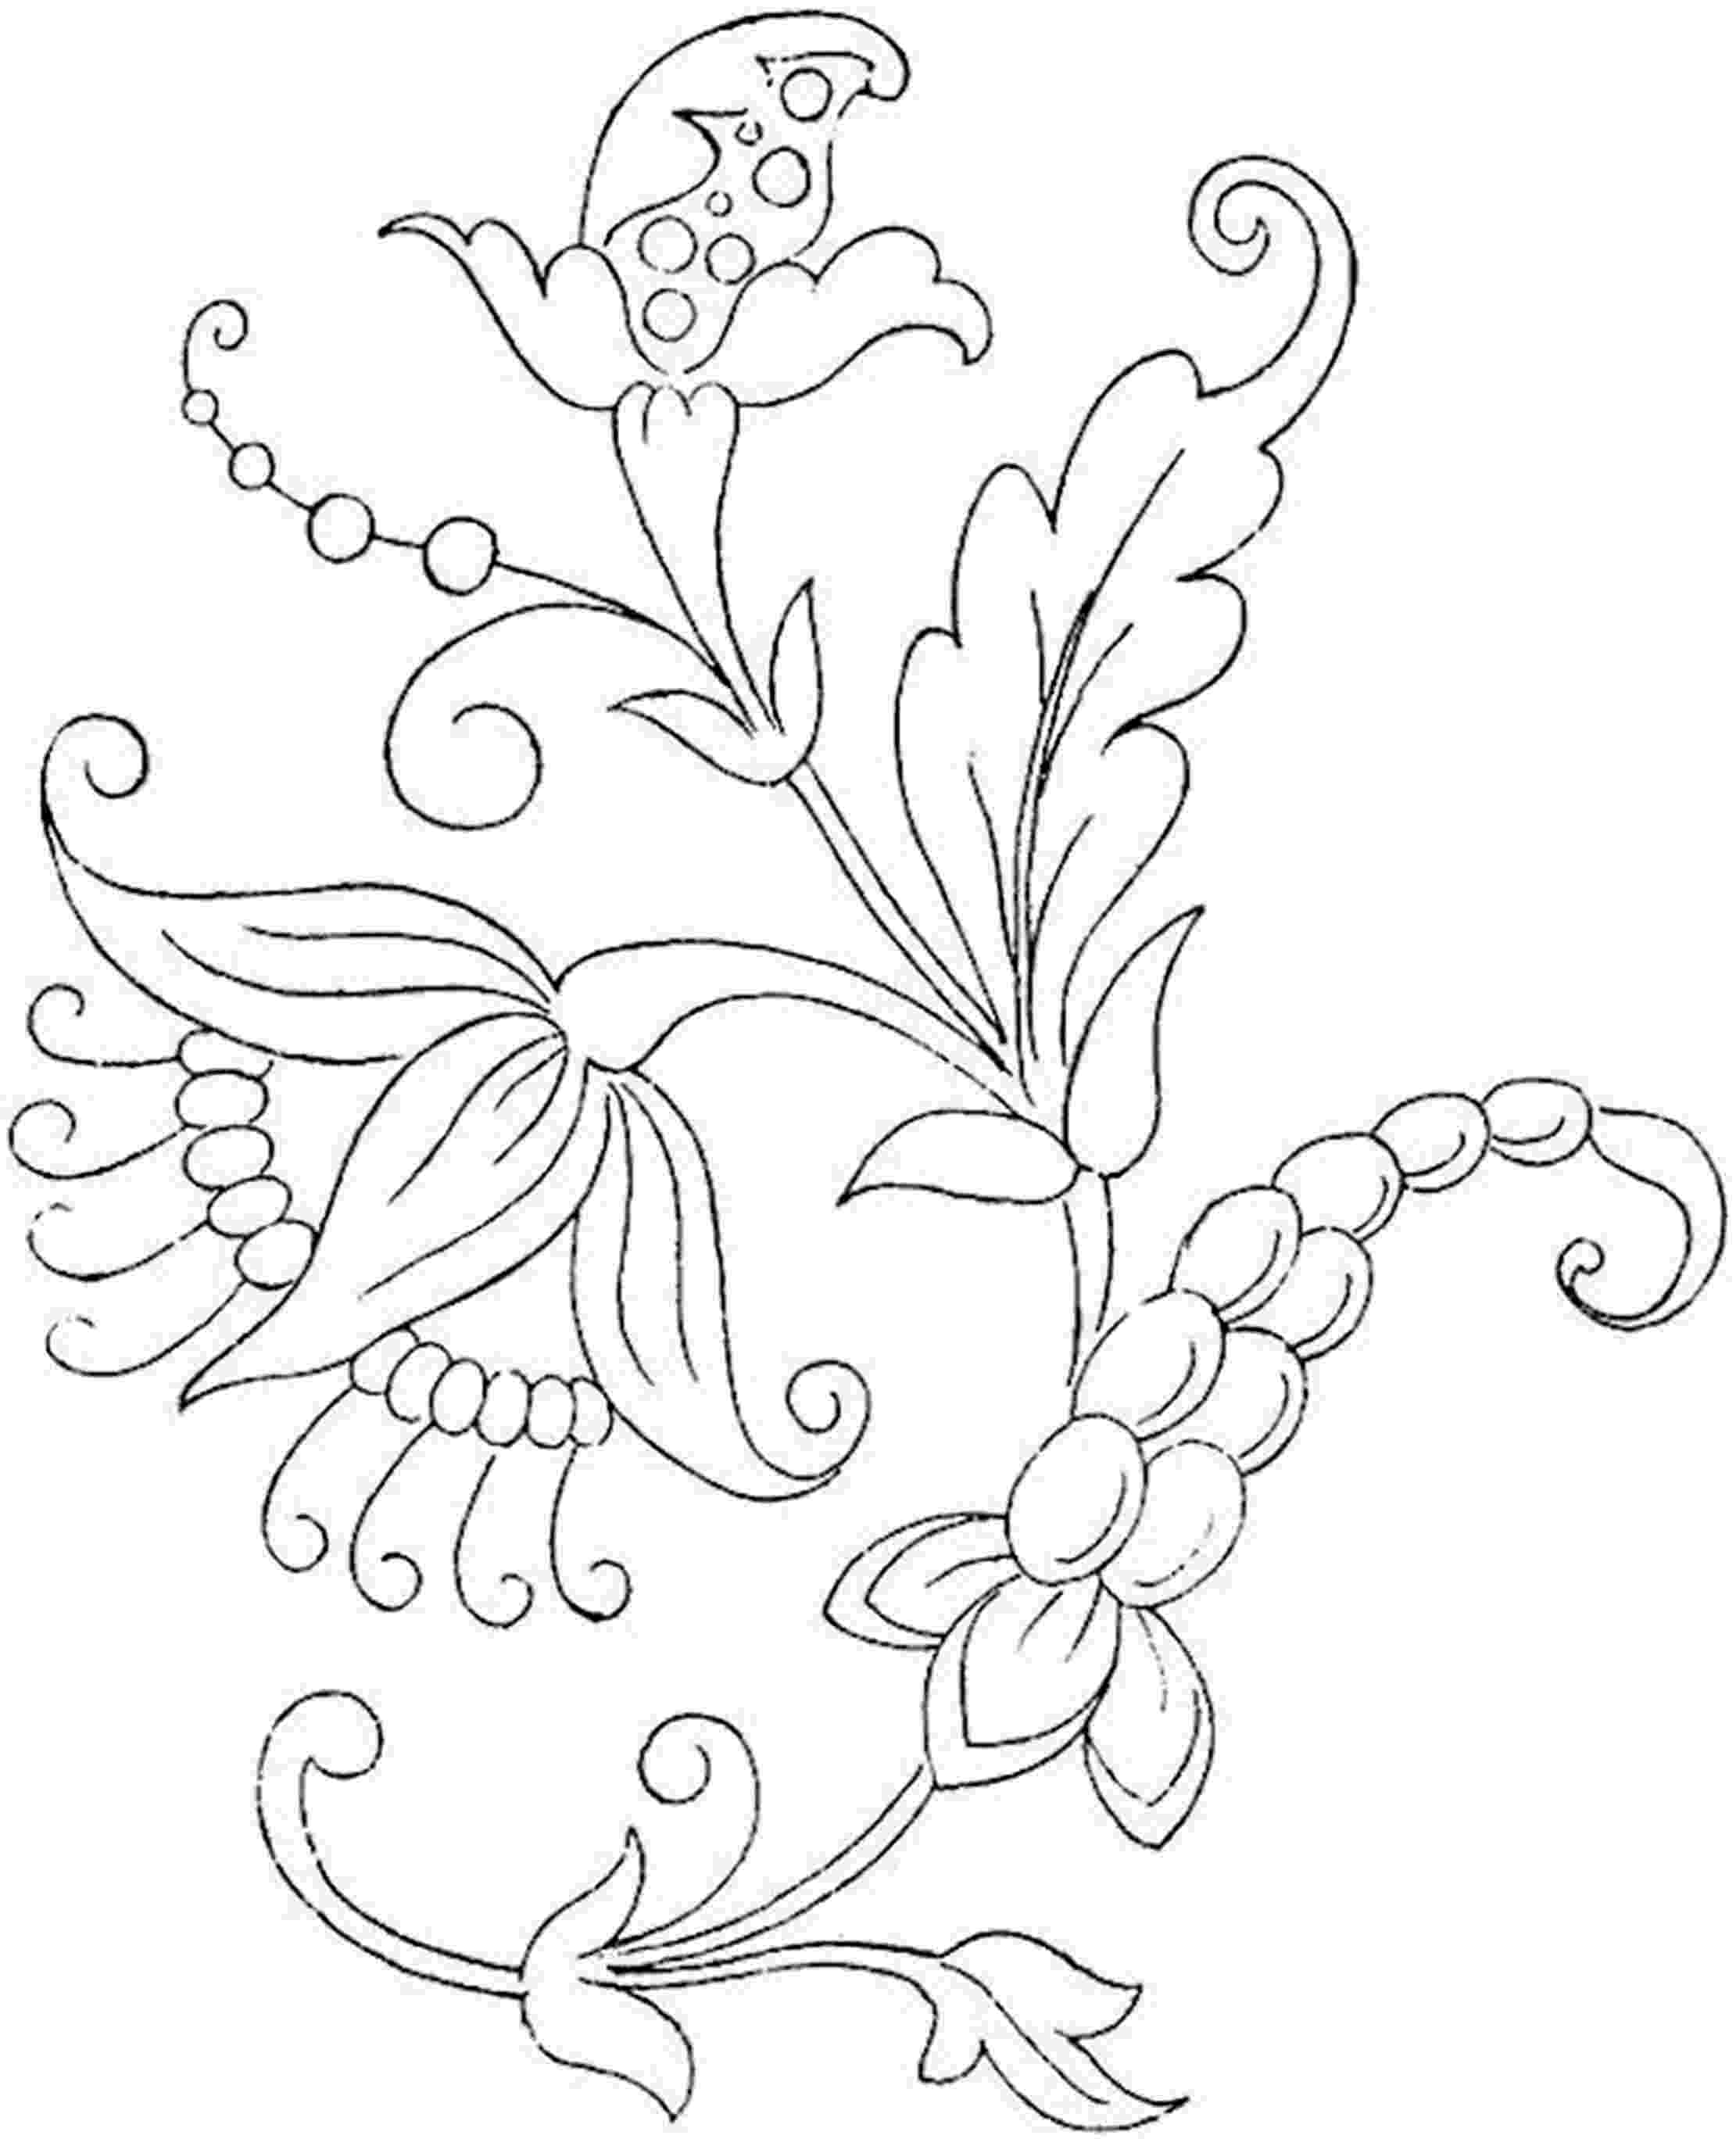 flower pictures to print and color free printable flower coloring pages for kids best color pictures to flower print and